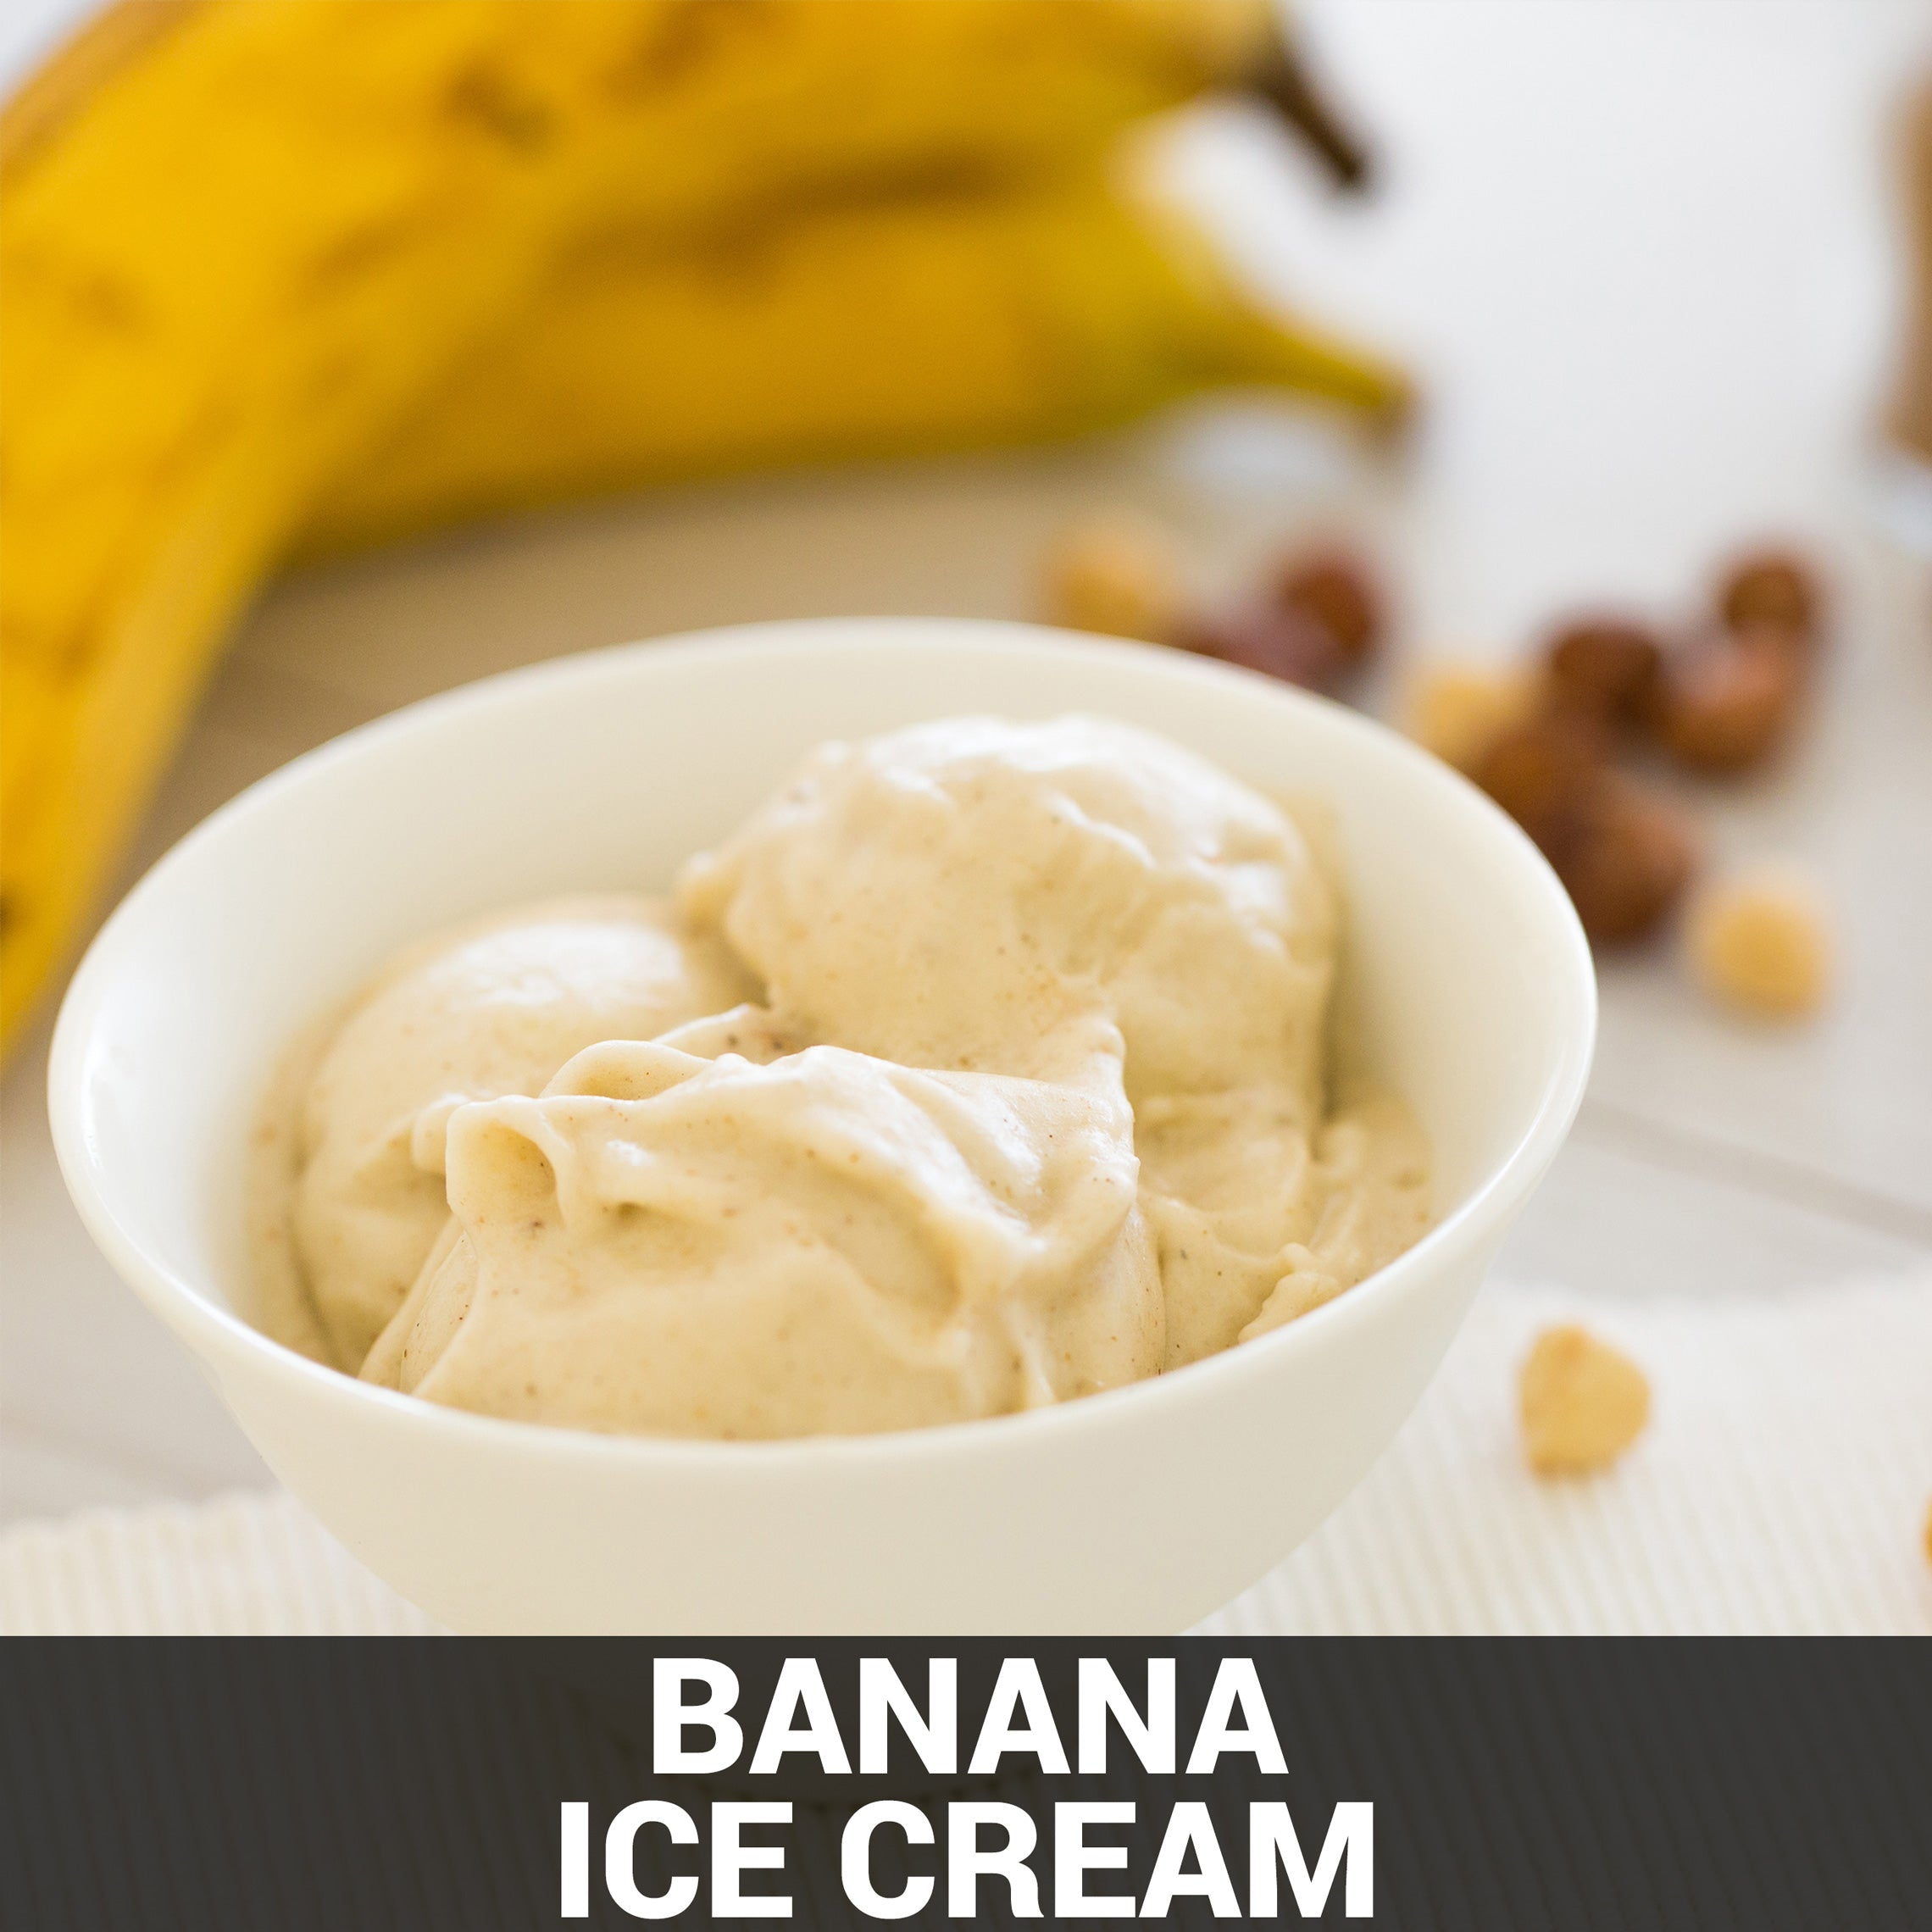 Banana Ice Cream Recipe - Foods Alive